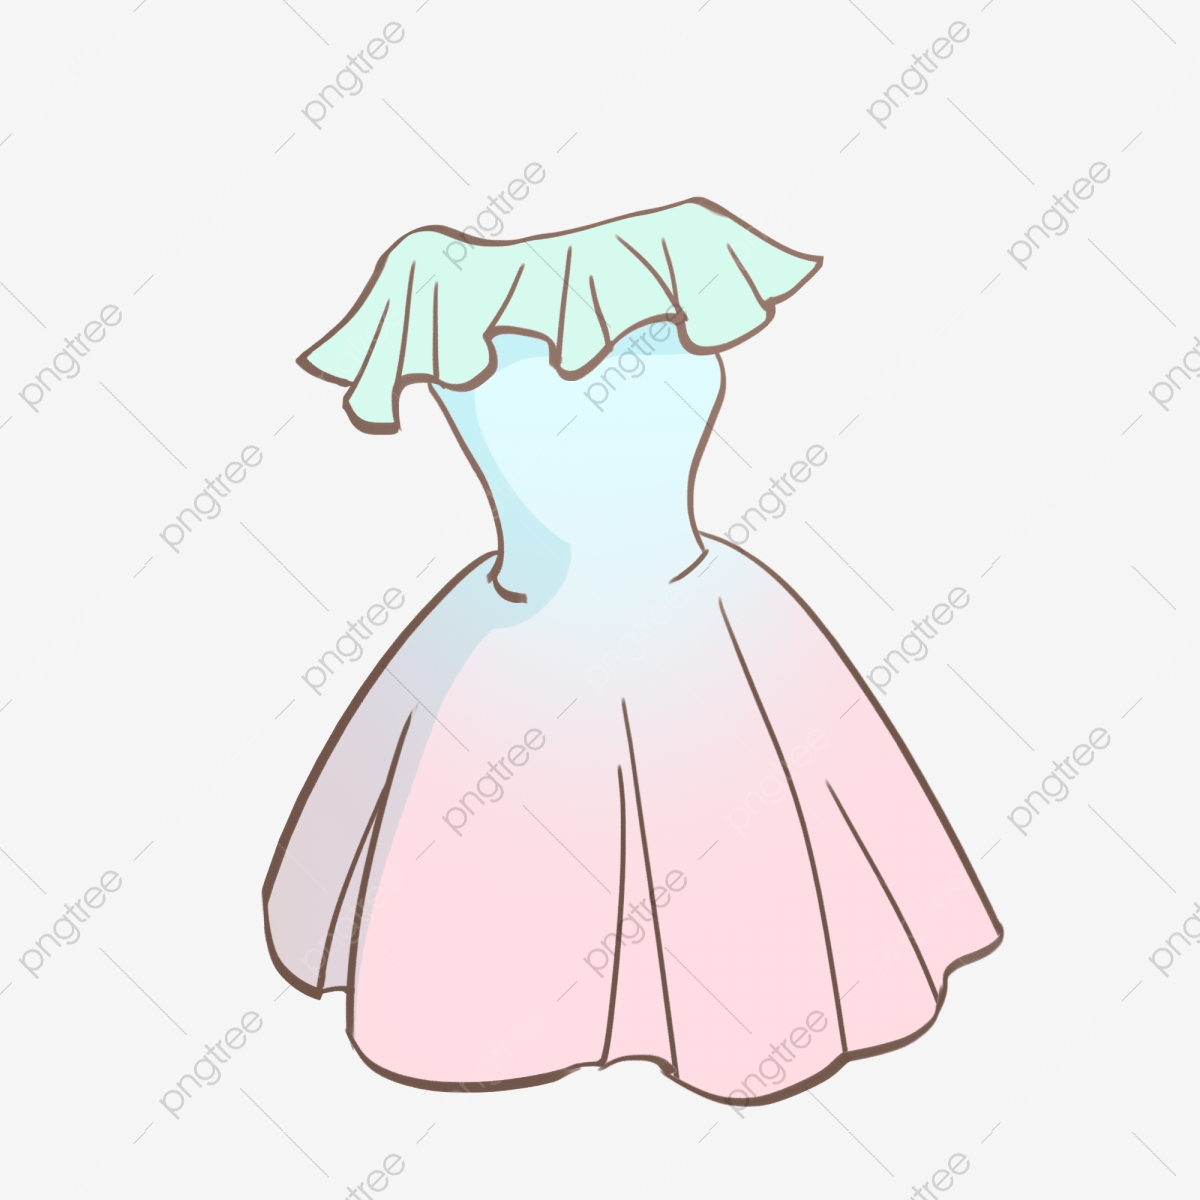 Dress Png Images Vector And Psd Files Free Download On Pngtree